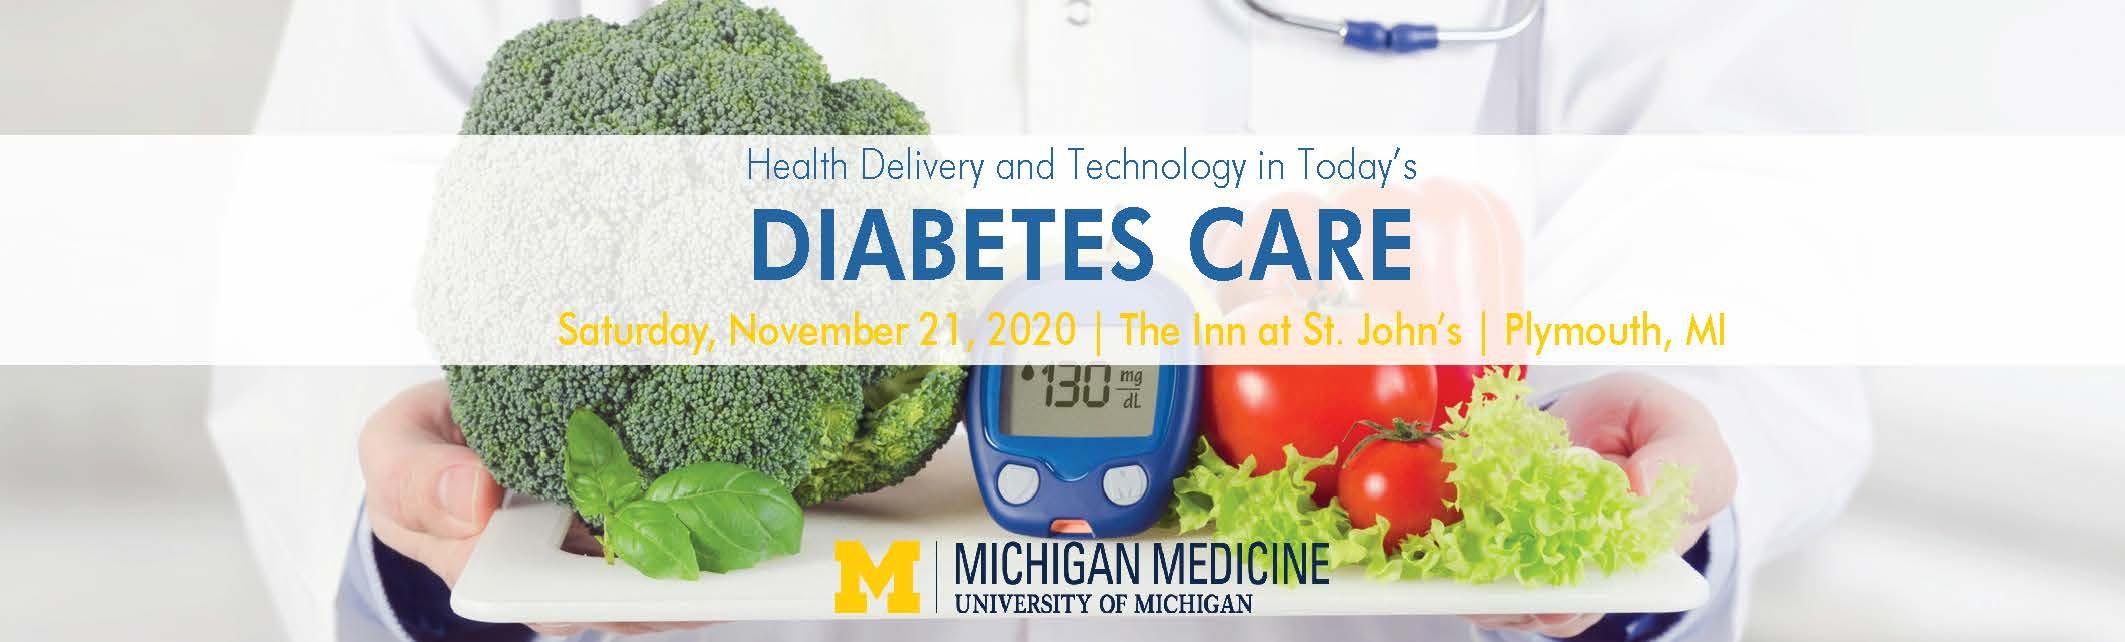 Health Delivery and Technology in Today's Diabetes Care